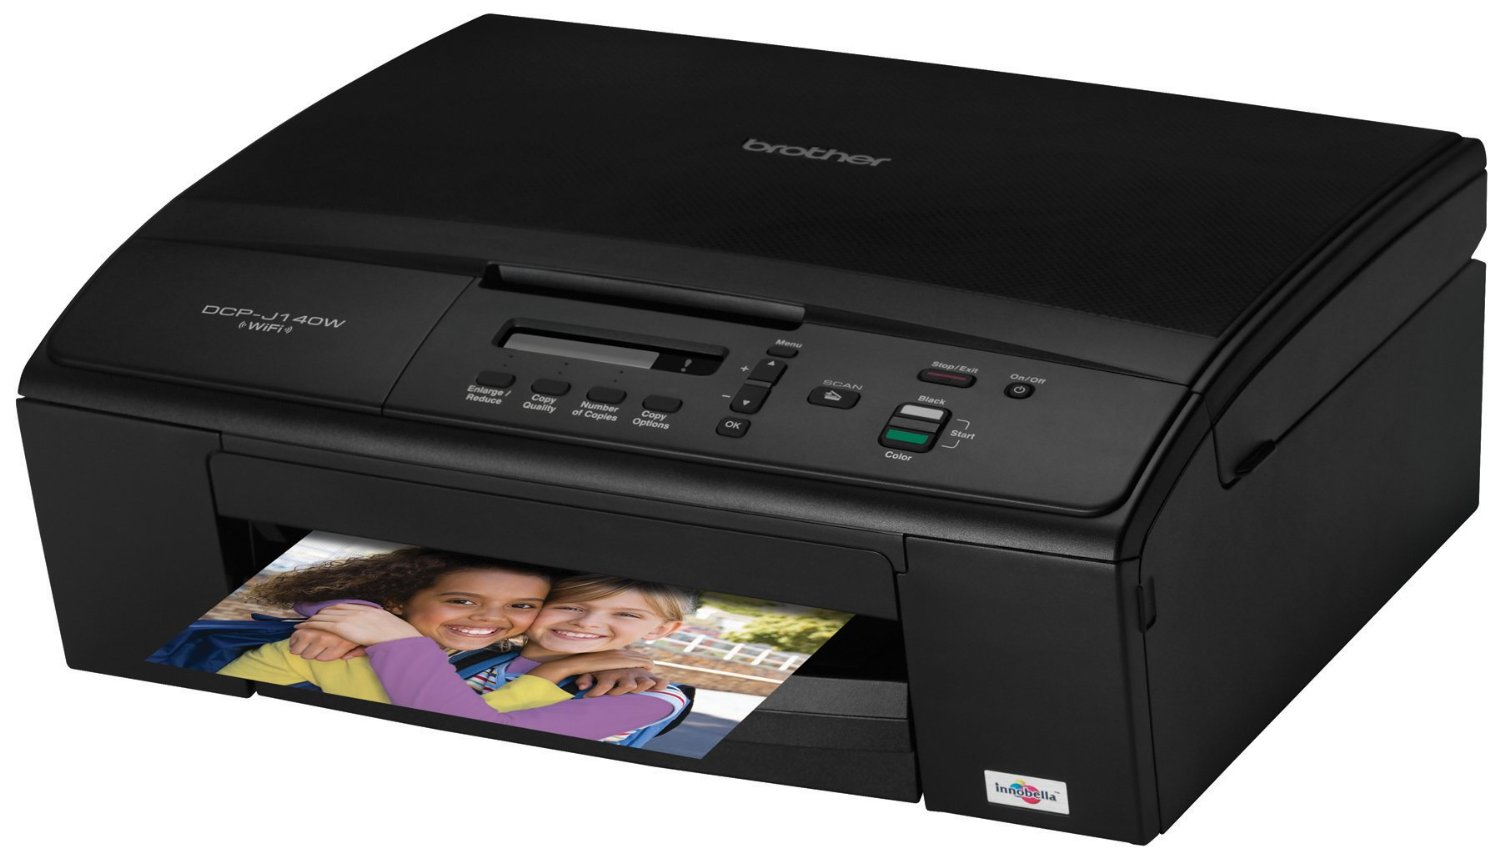 BROTHER DCP-J140W TWAIN SCANNER WINDOWS 8 DRIVERS DOWNLOAD